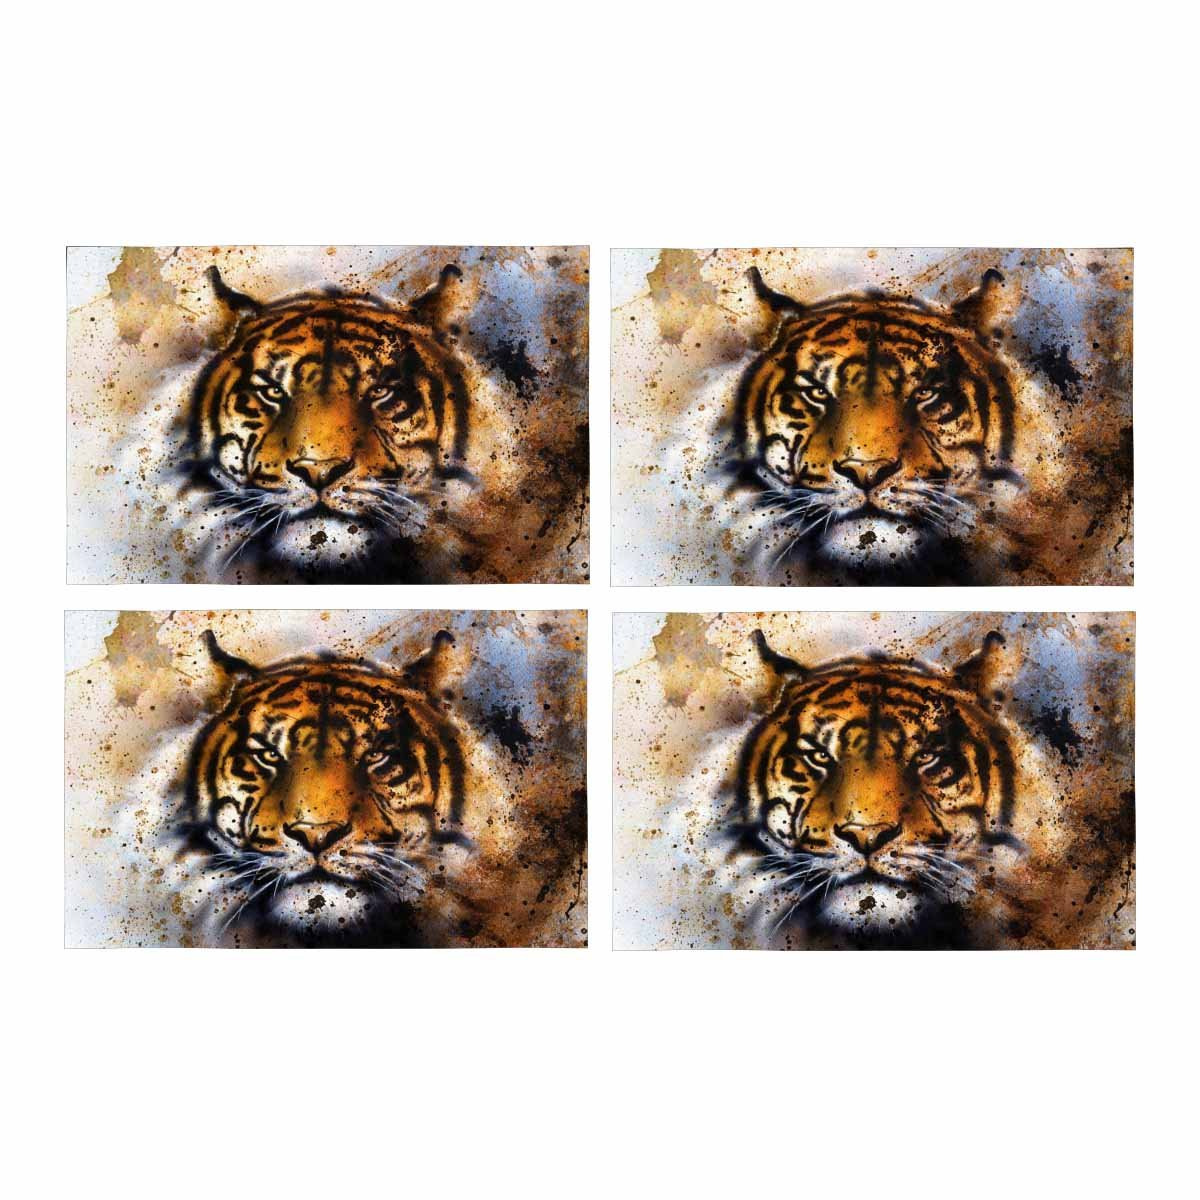 InterestPrint Tiger Collage Rust Structure Wildlife Animals Eye Placemat Table Mats Set of 4, Heat Resistant Place Mat for Dining Table Restaurant Home Kitchen Decor 12x18